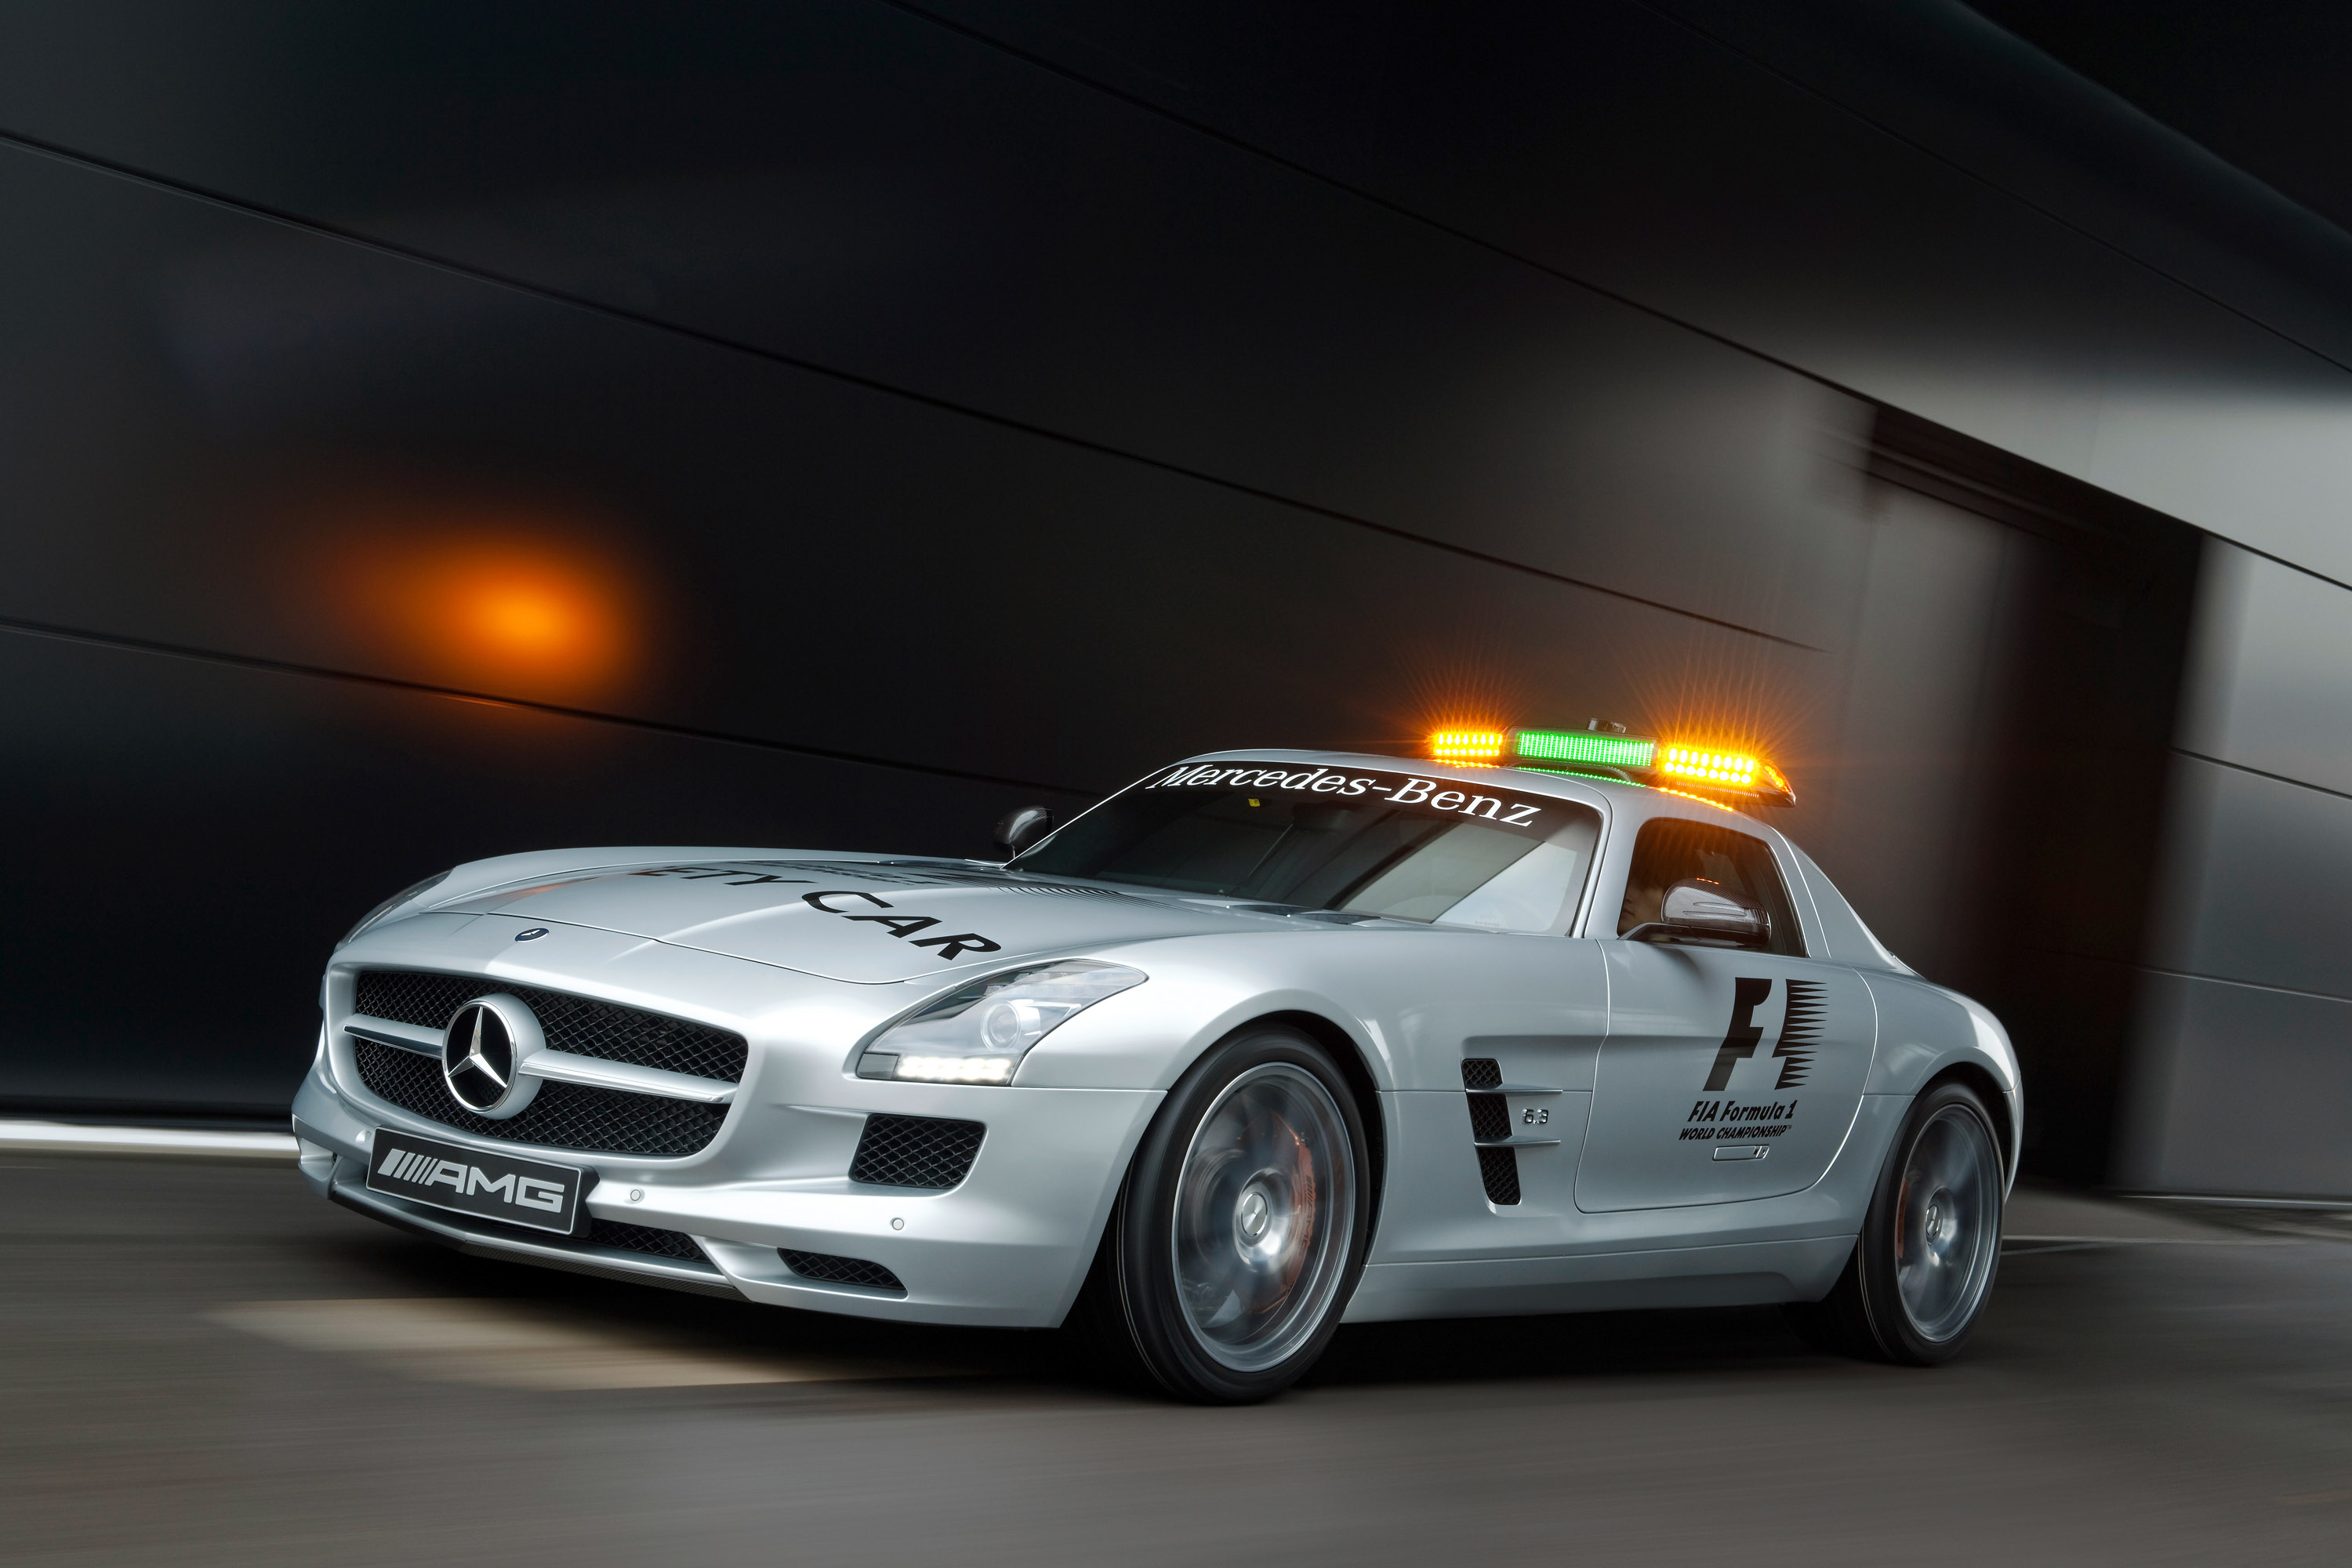 Mercedes Benz Sls Amg F1 Safety Car Picture 34981